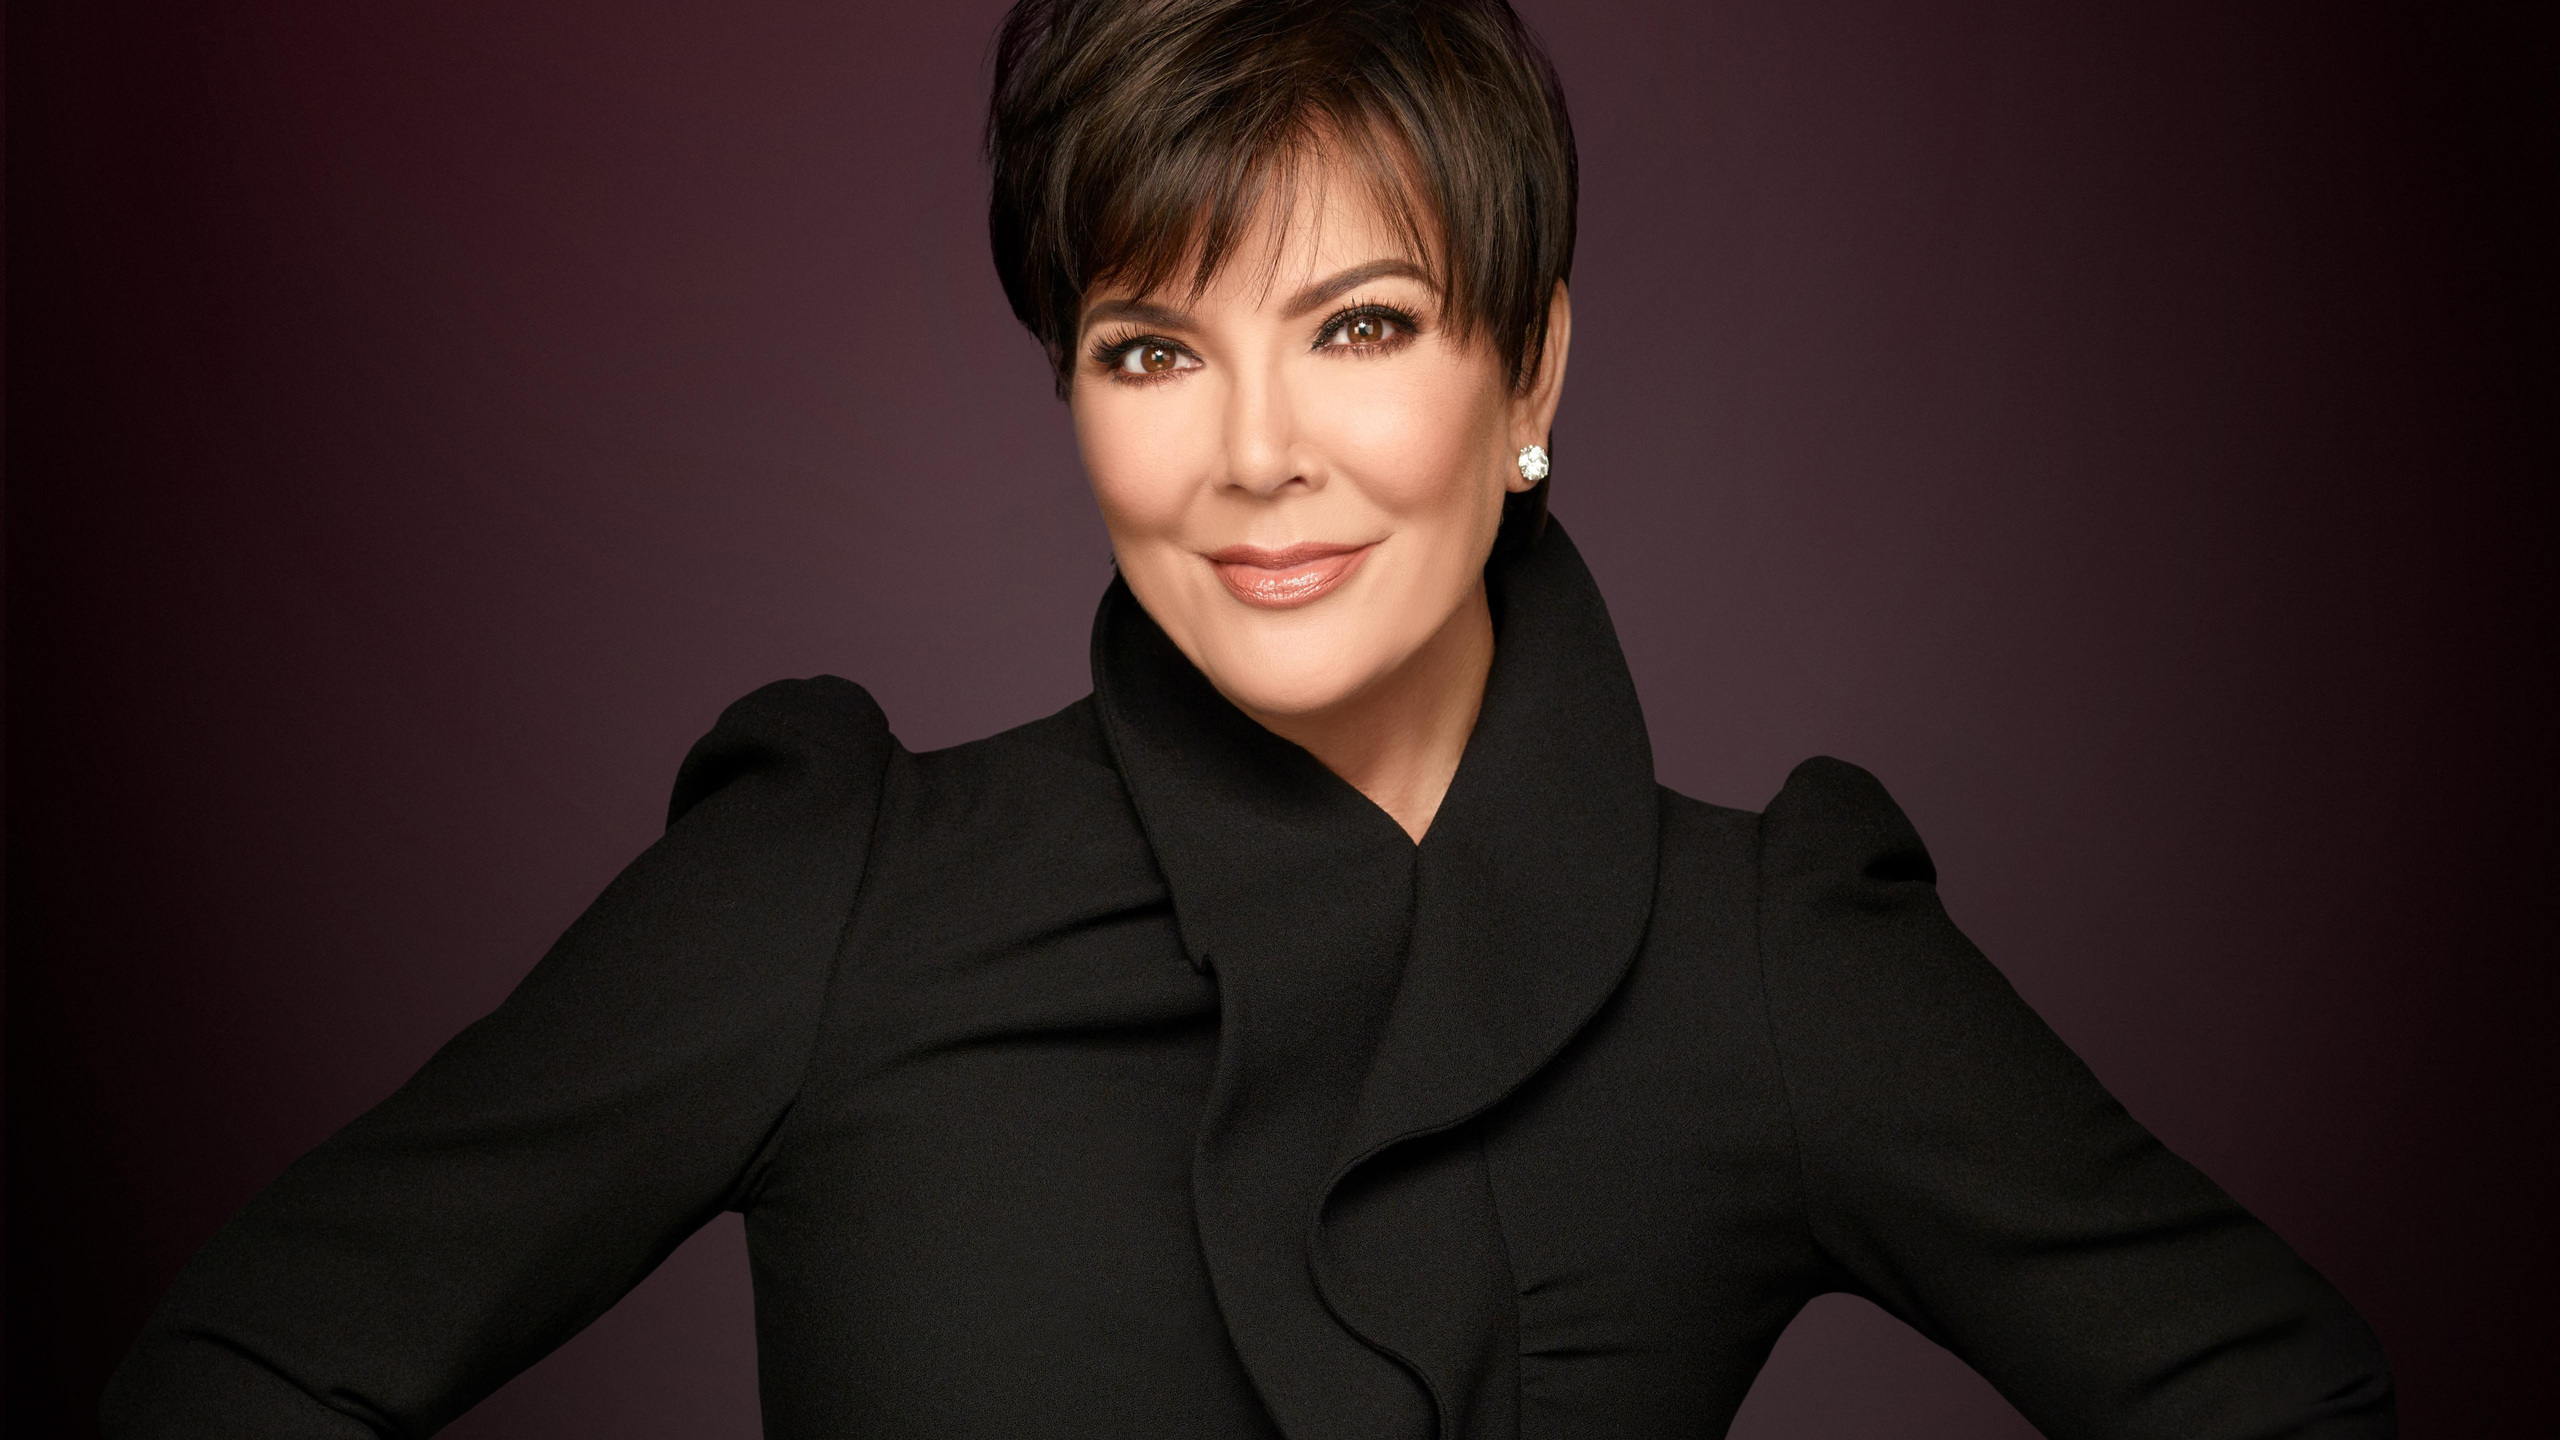 kris-jenner-keeping-up-with-the-kardashians-season-14-2017-bc.jpg